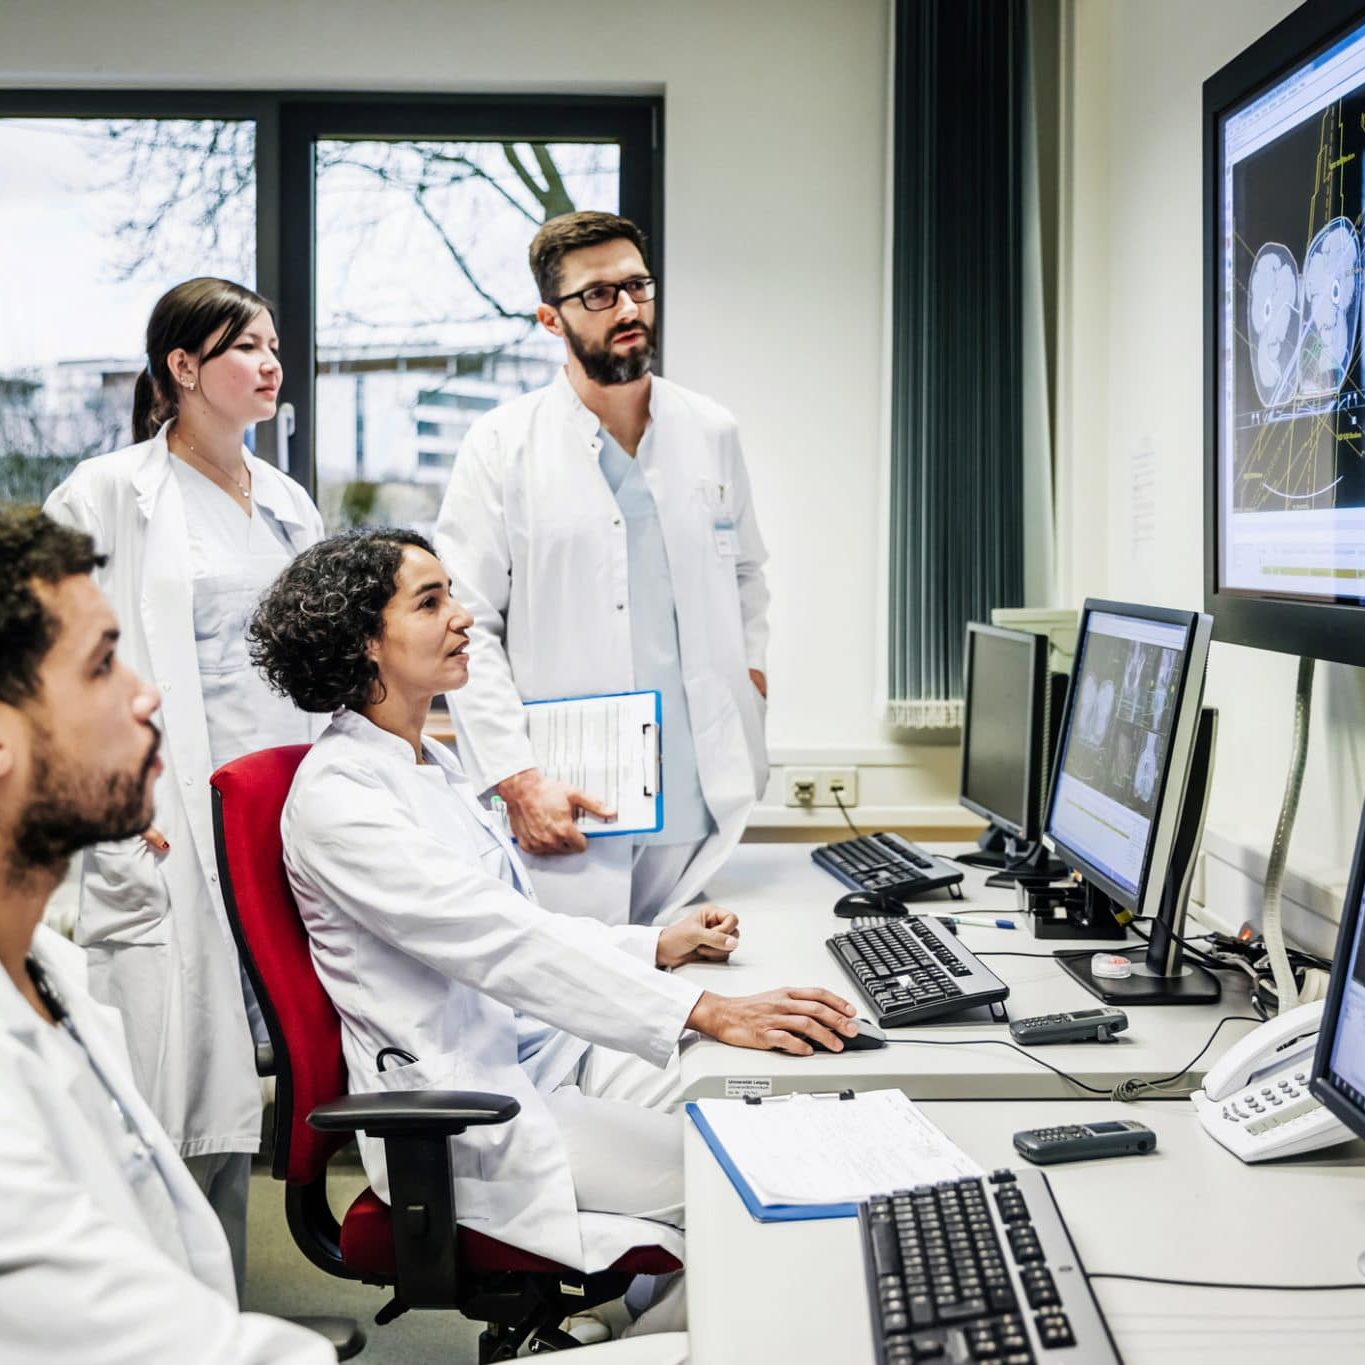 A group of clinical doctors monitoring a patient's condition, looking at information on a computerscreen in a hospital office.